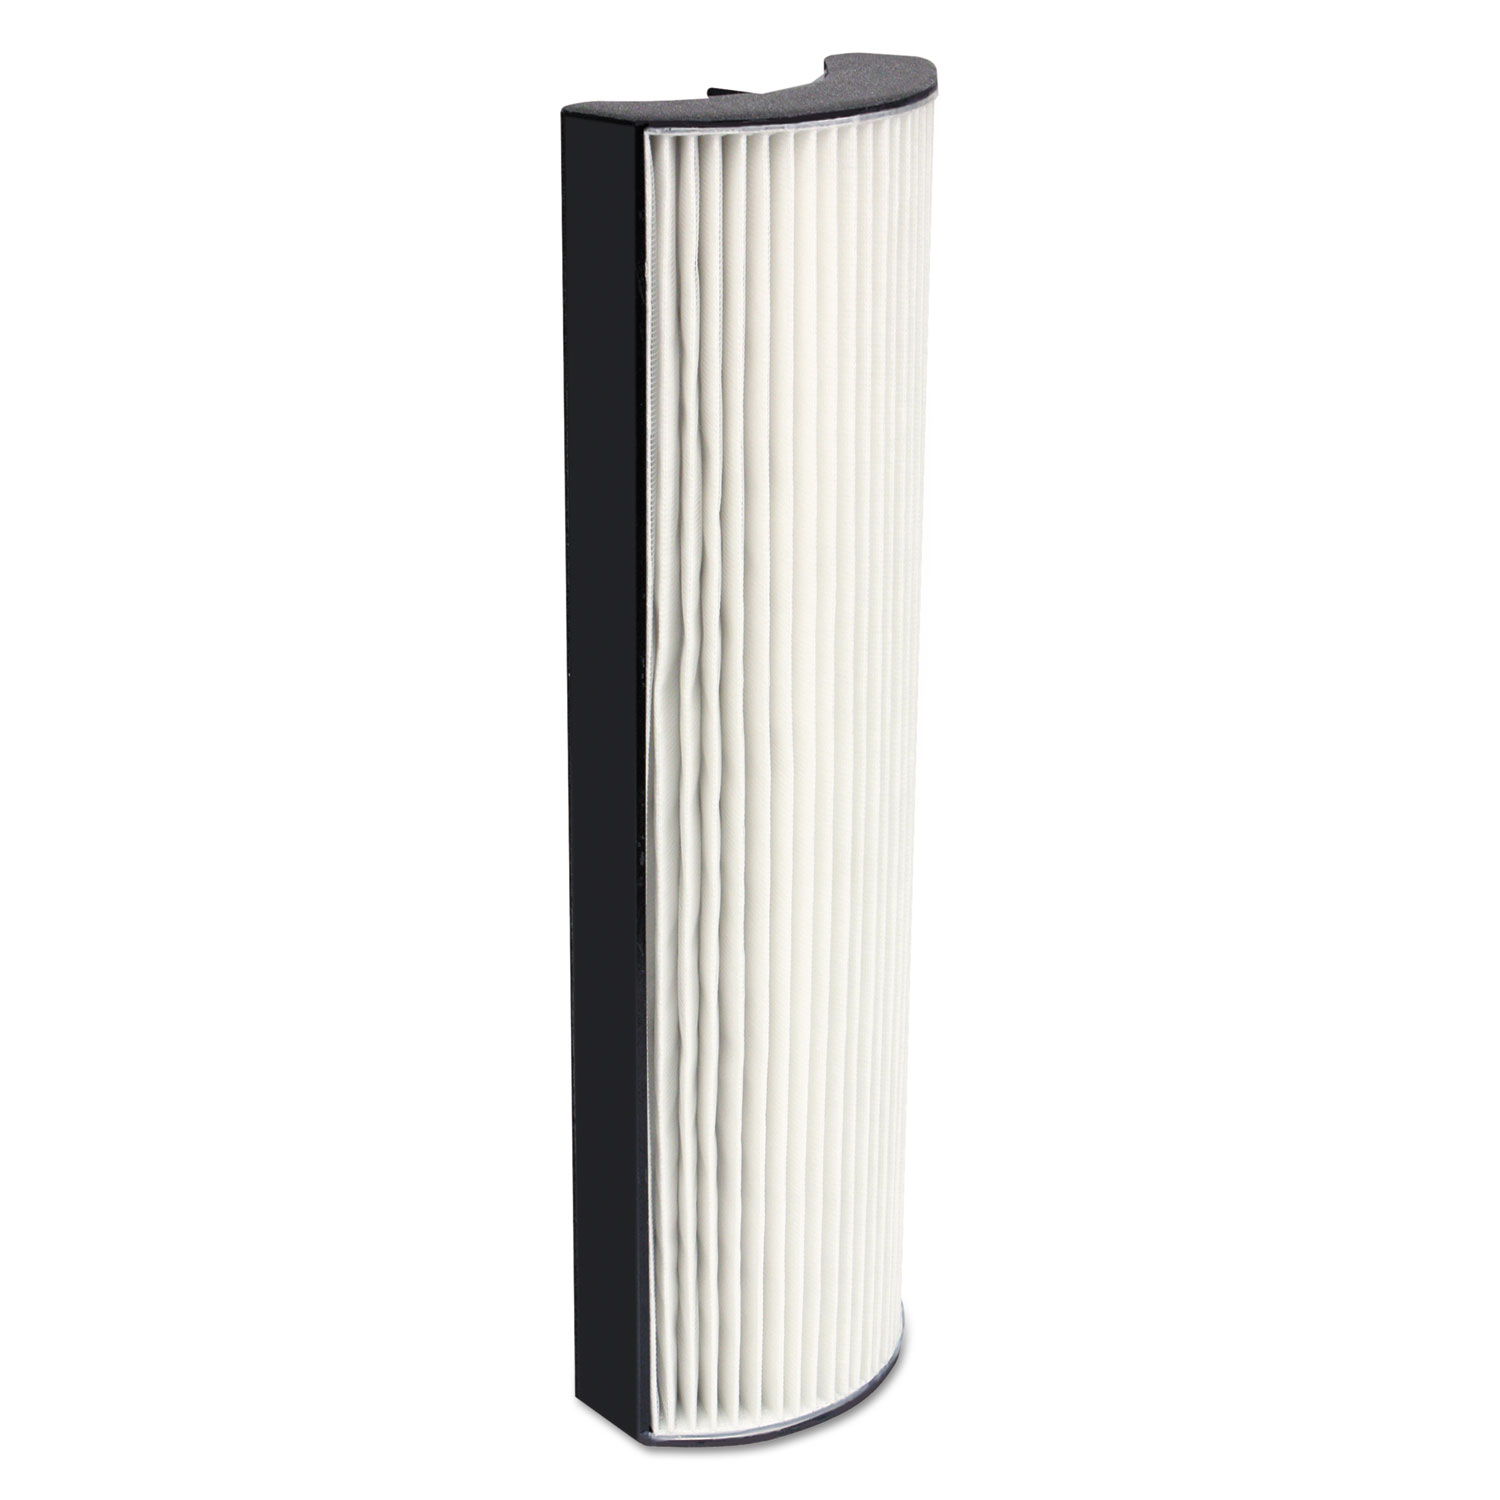 Replacement Filter for Allergy Pro 200 Air Purifier, 5 x 3 x 17